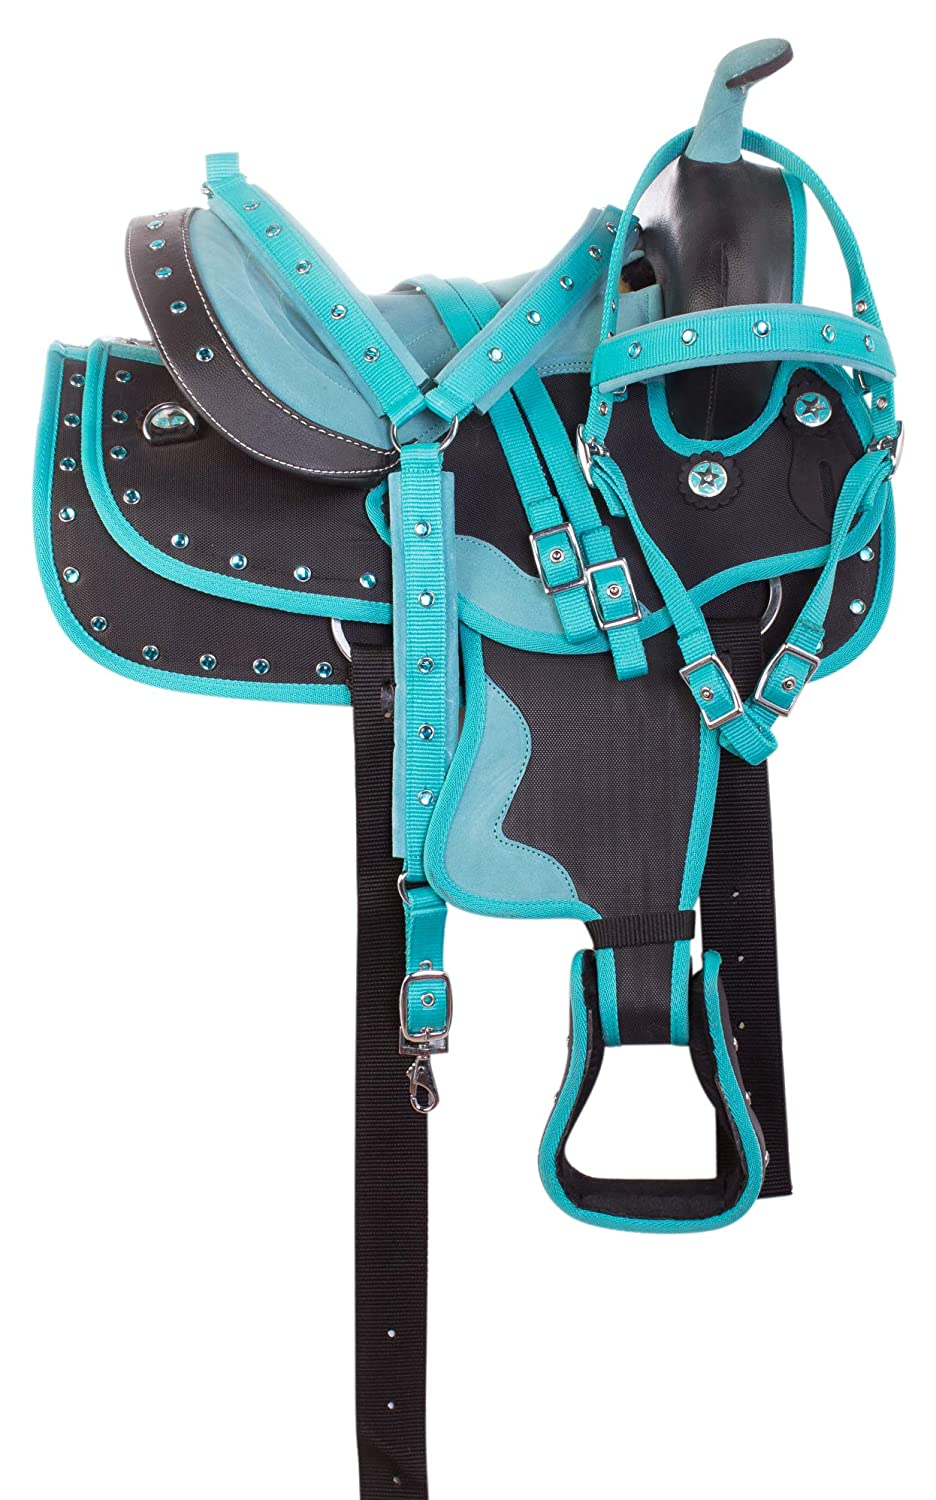 AceRugs Turquoise Crystal Show Youth Kids Size Western Horse Pony Saddle TACK Set Barrel Trail Bridle REINS Breast Collar